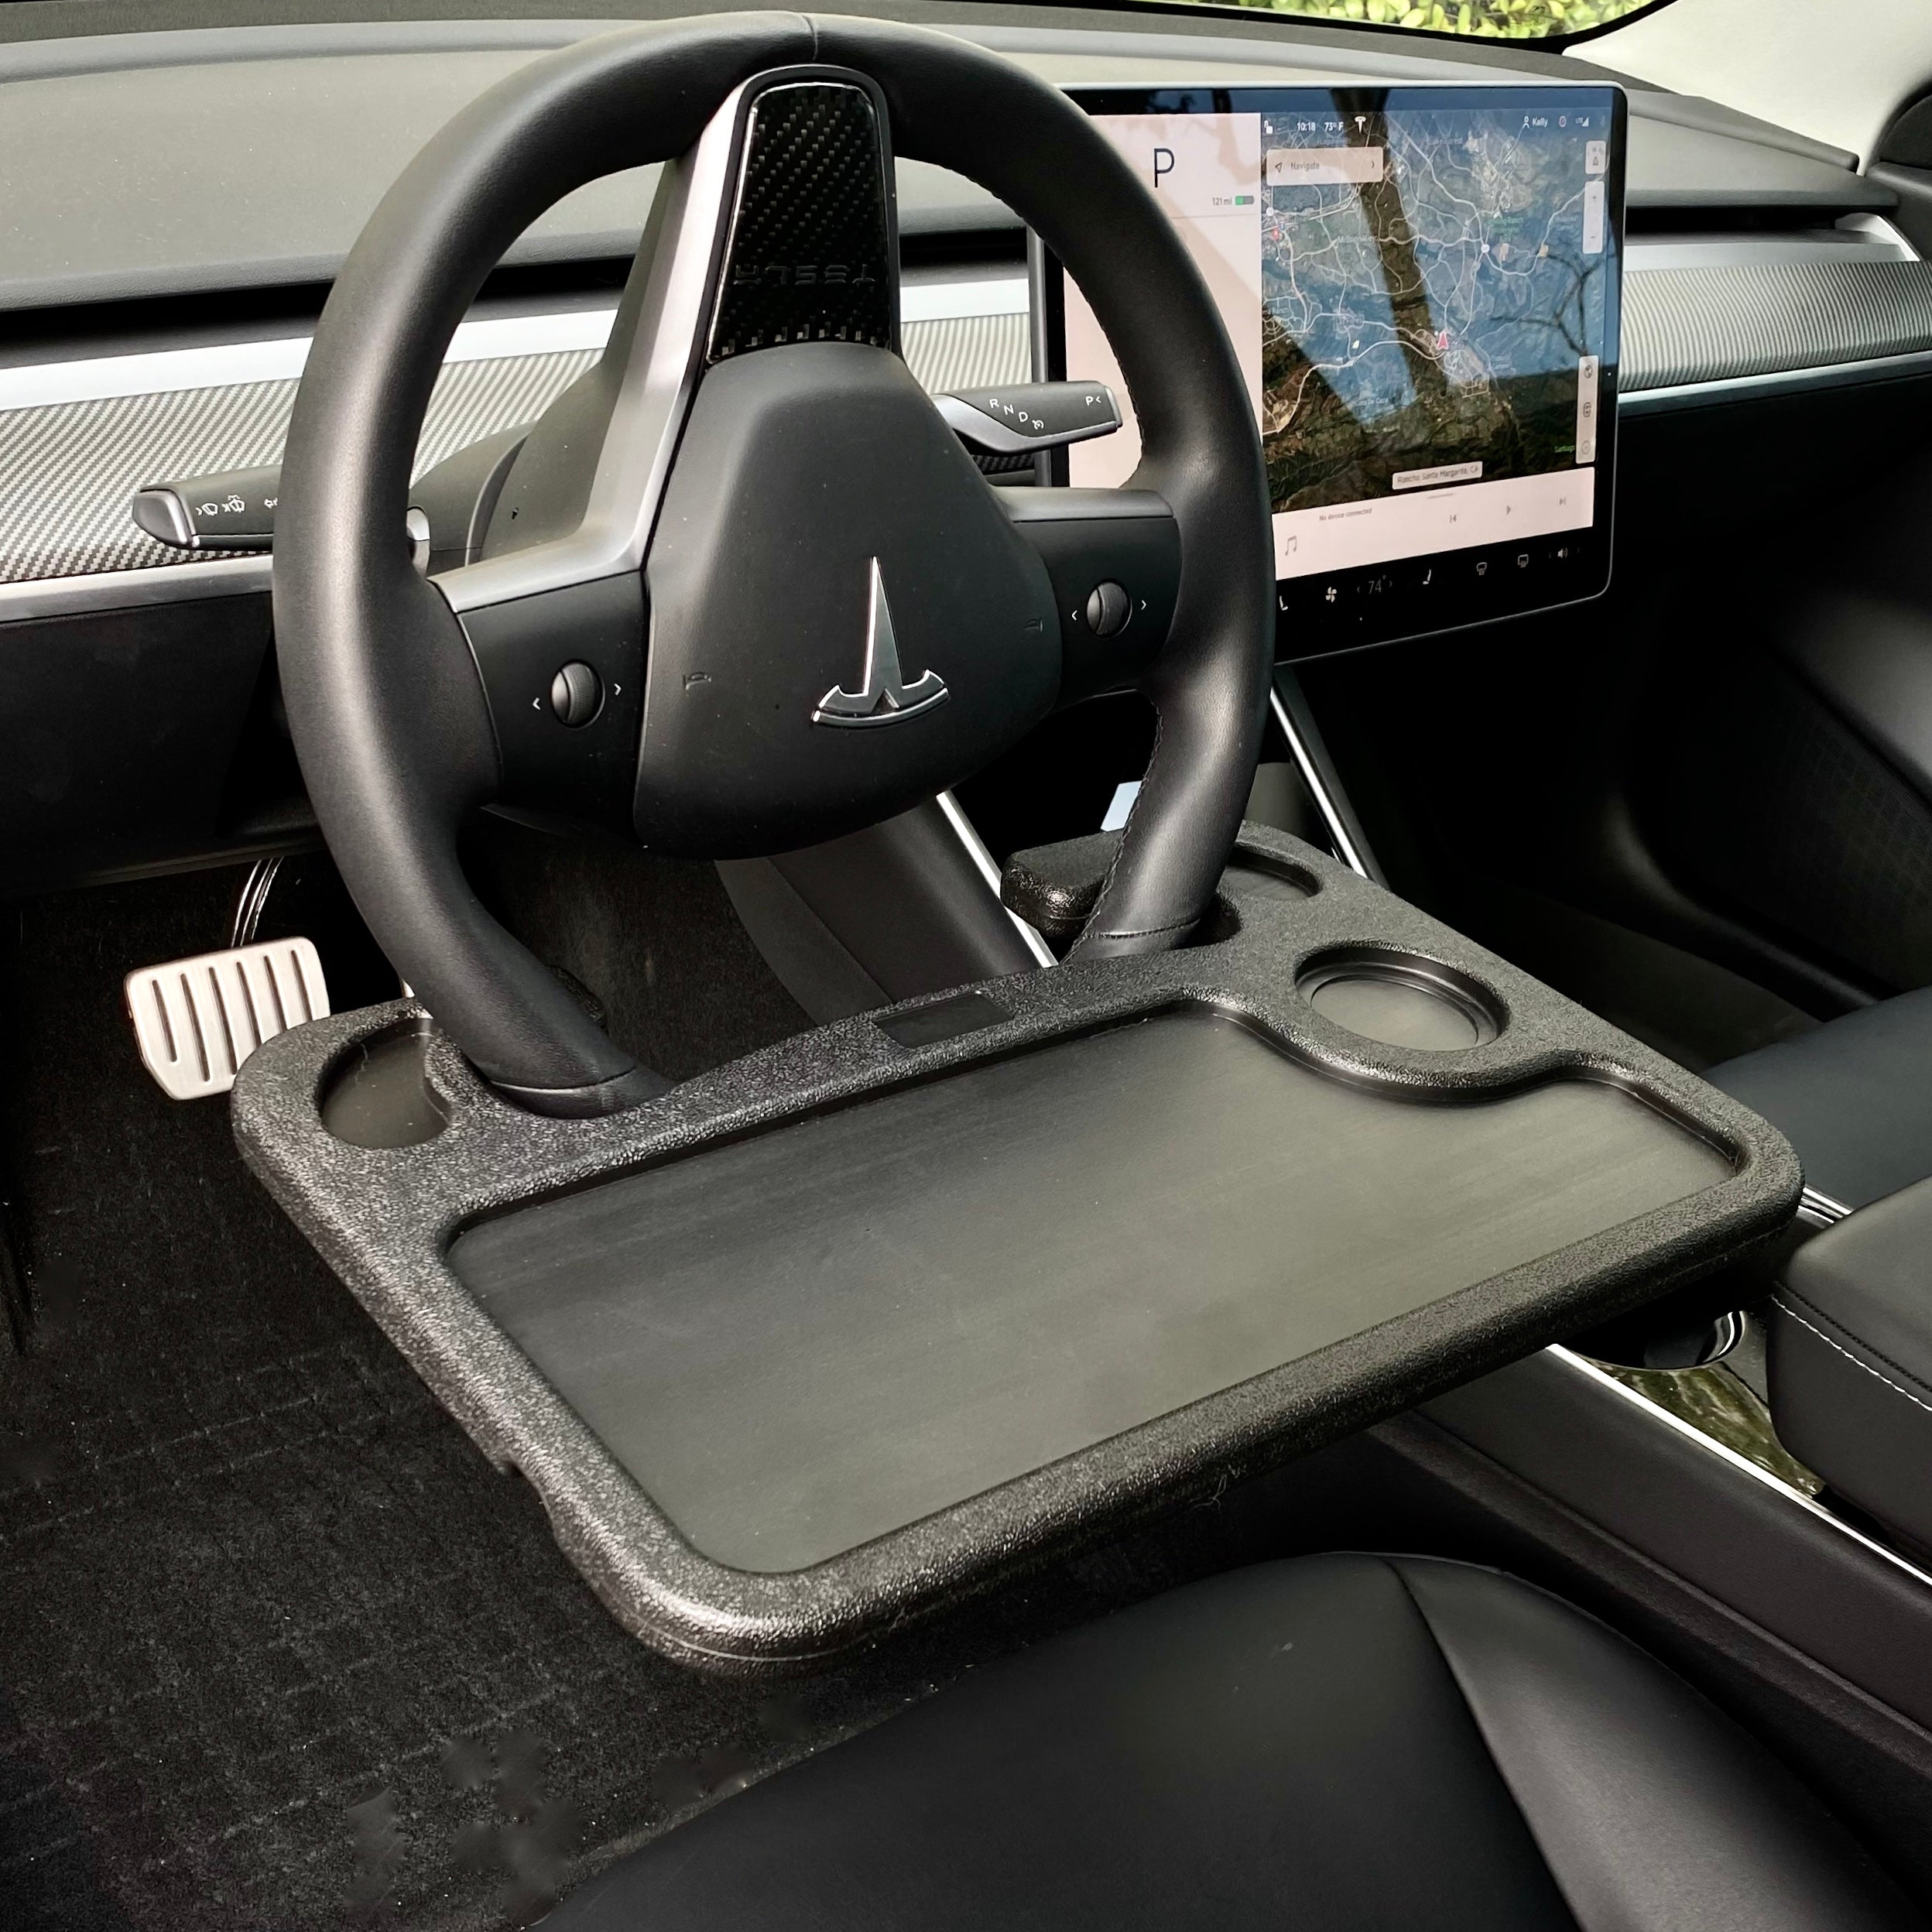 Steering Wheel Workstation Tray 39 For Models S3x Y